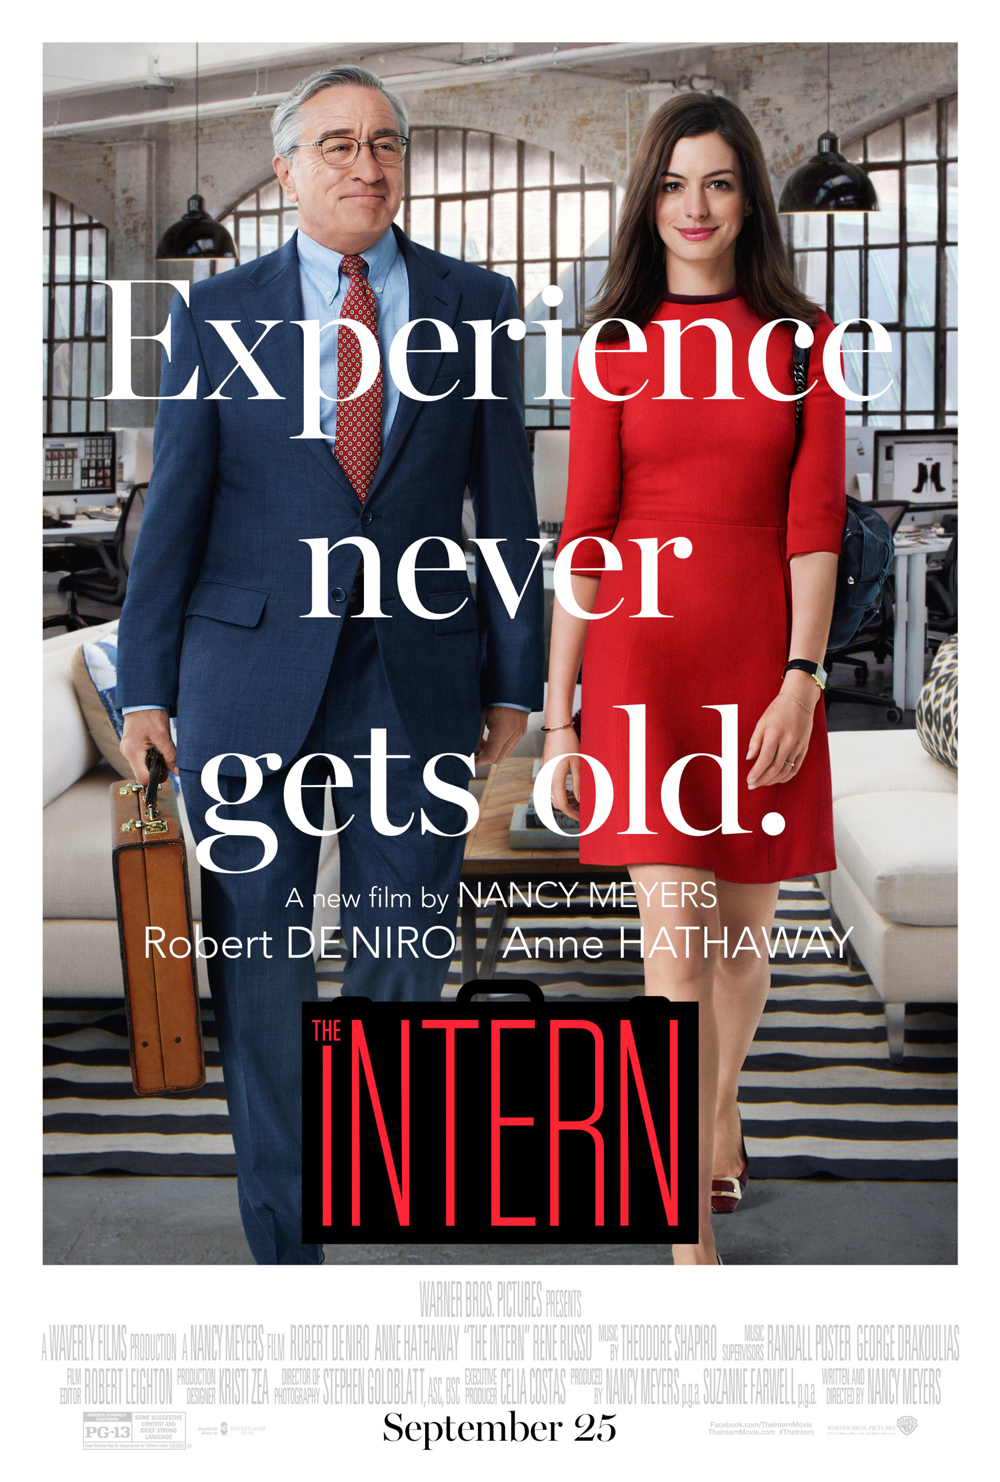 a review of the intern a comedy film by nancy meyers The adages of the intern are delivered in a comedy a review of the classic 1979 film her i'd had a genuinely good time watching a nancy meyers movie.